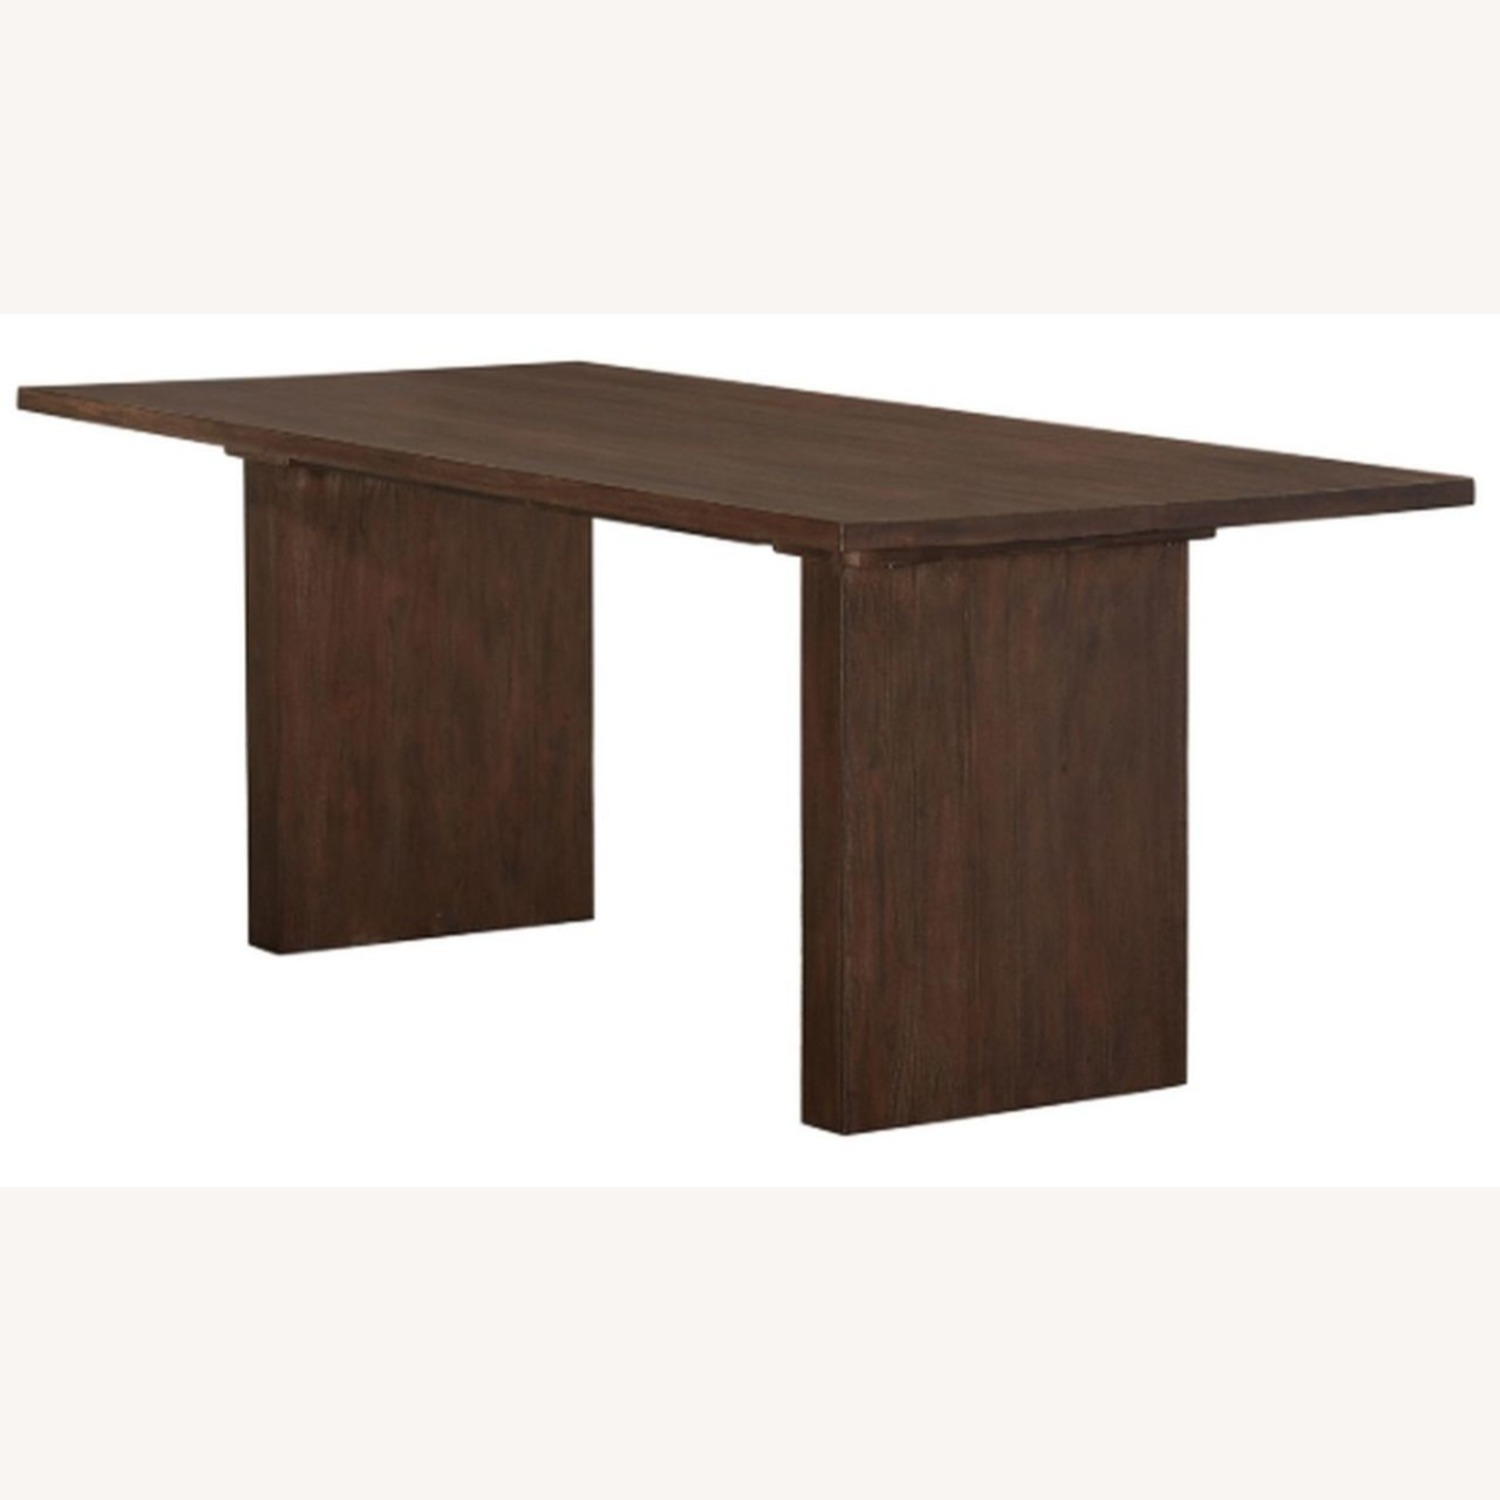 Modern Dining Table In Solid Mahogany - image-0